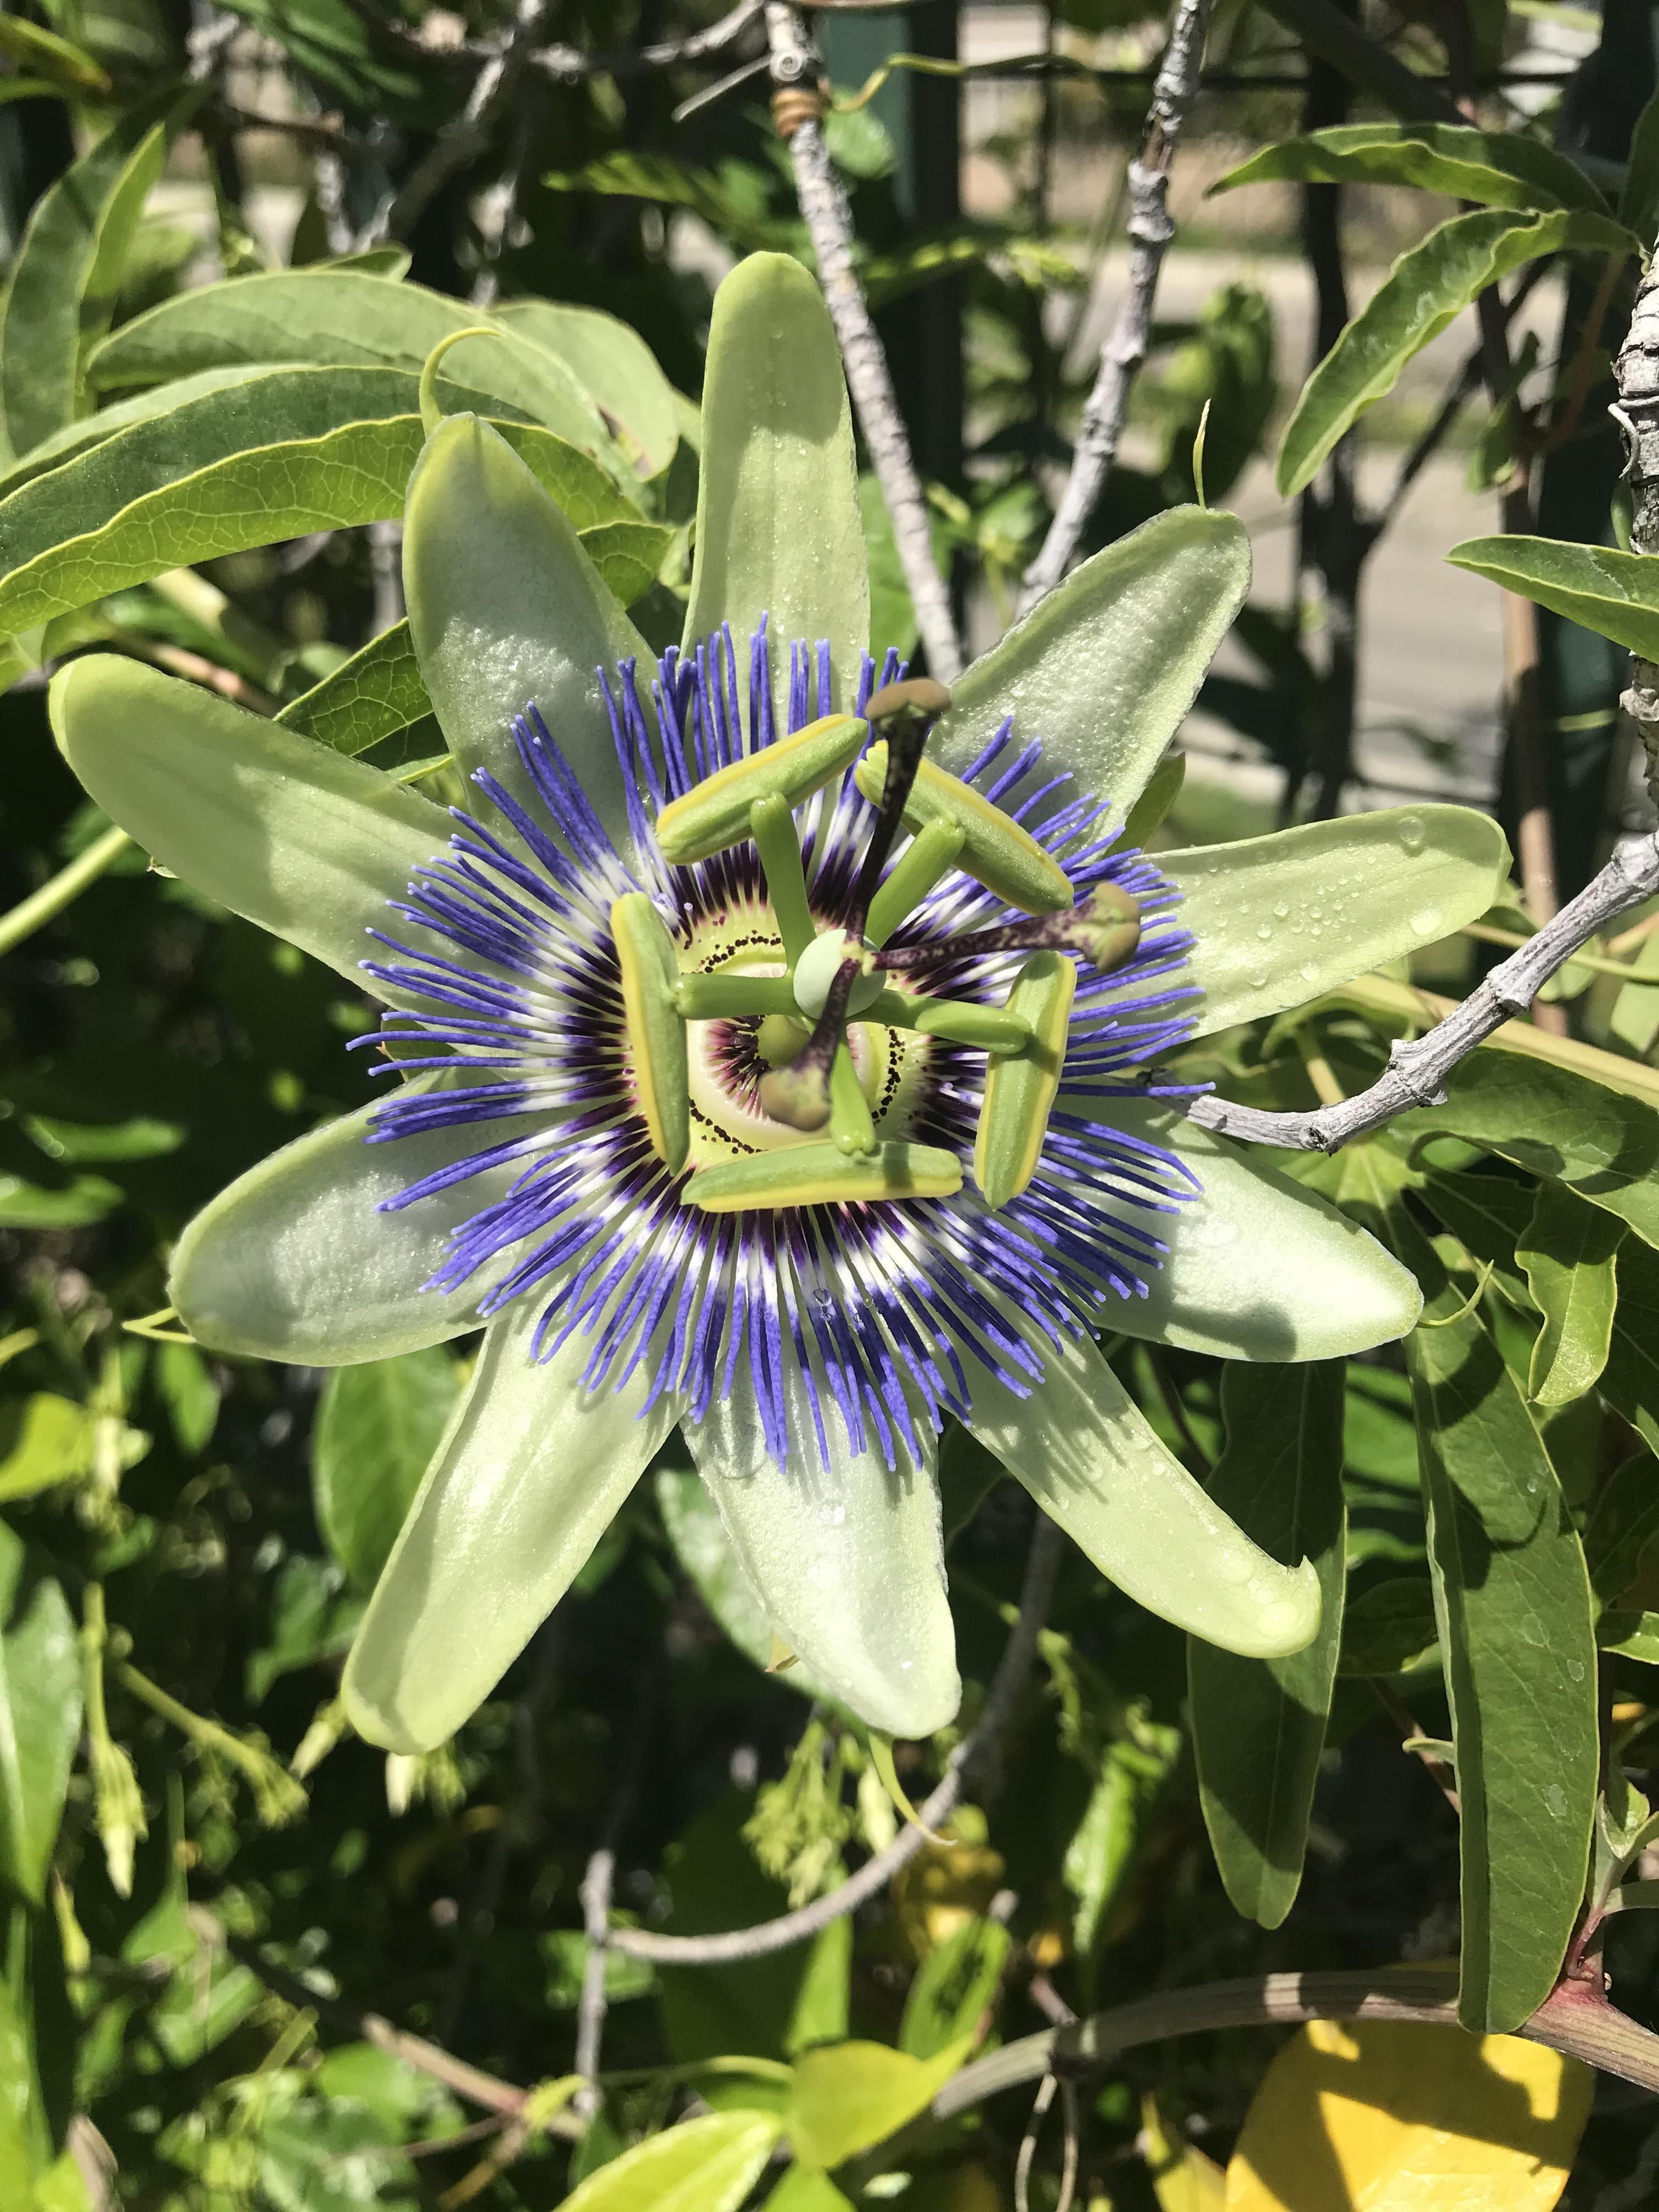 I Believe This Is A Passion Flower It And A Bunch Of Others Were Growing On A Vine In My Backyard We Didnt Plant Them In 2020 Plants Passion Flower Vines